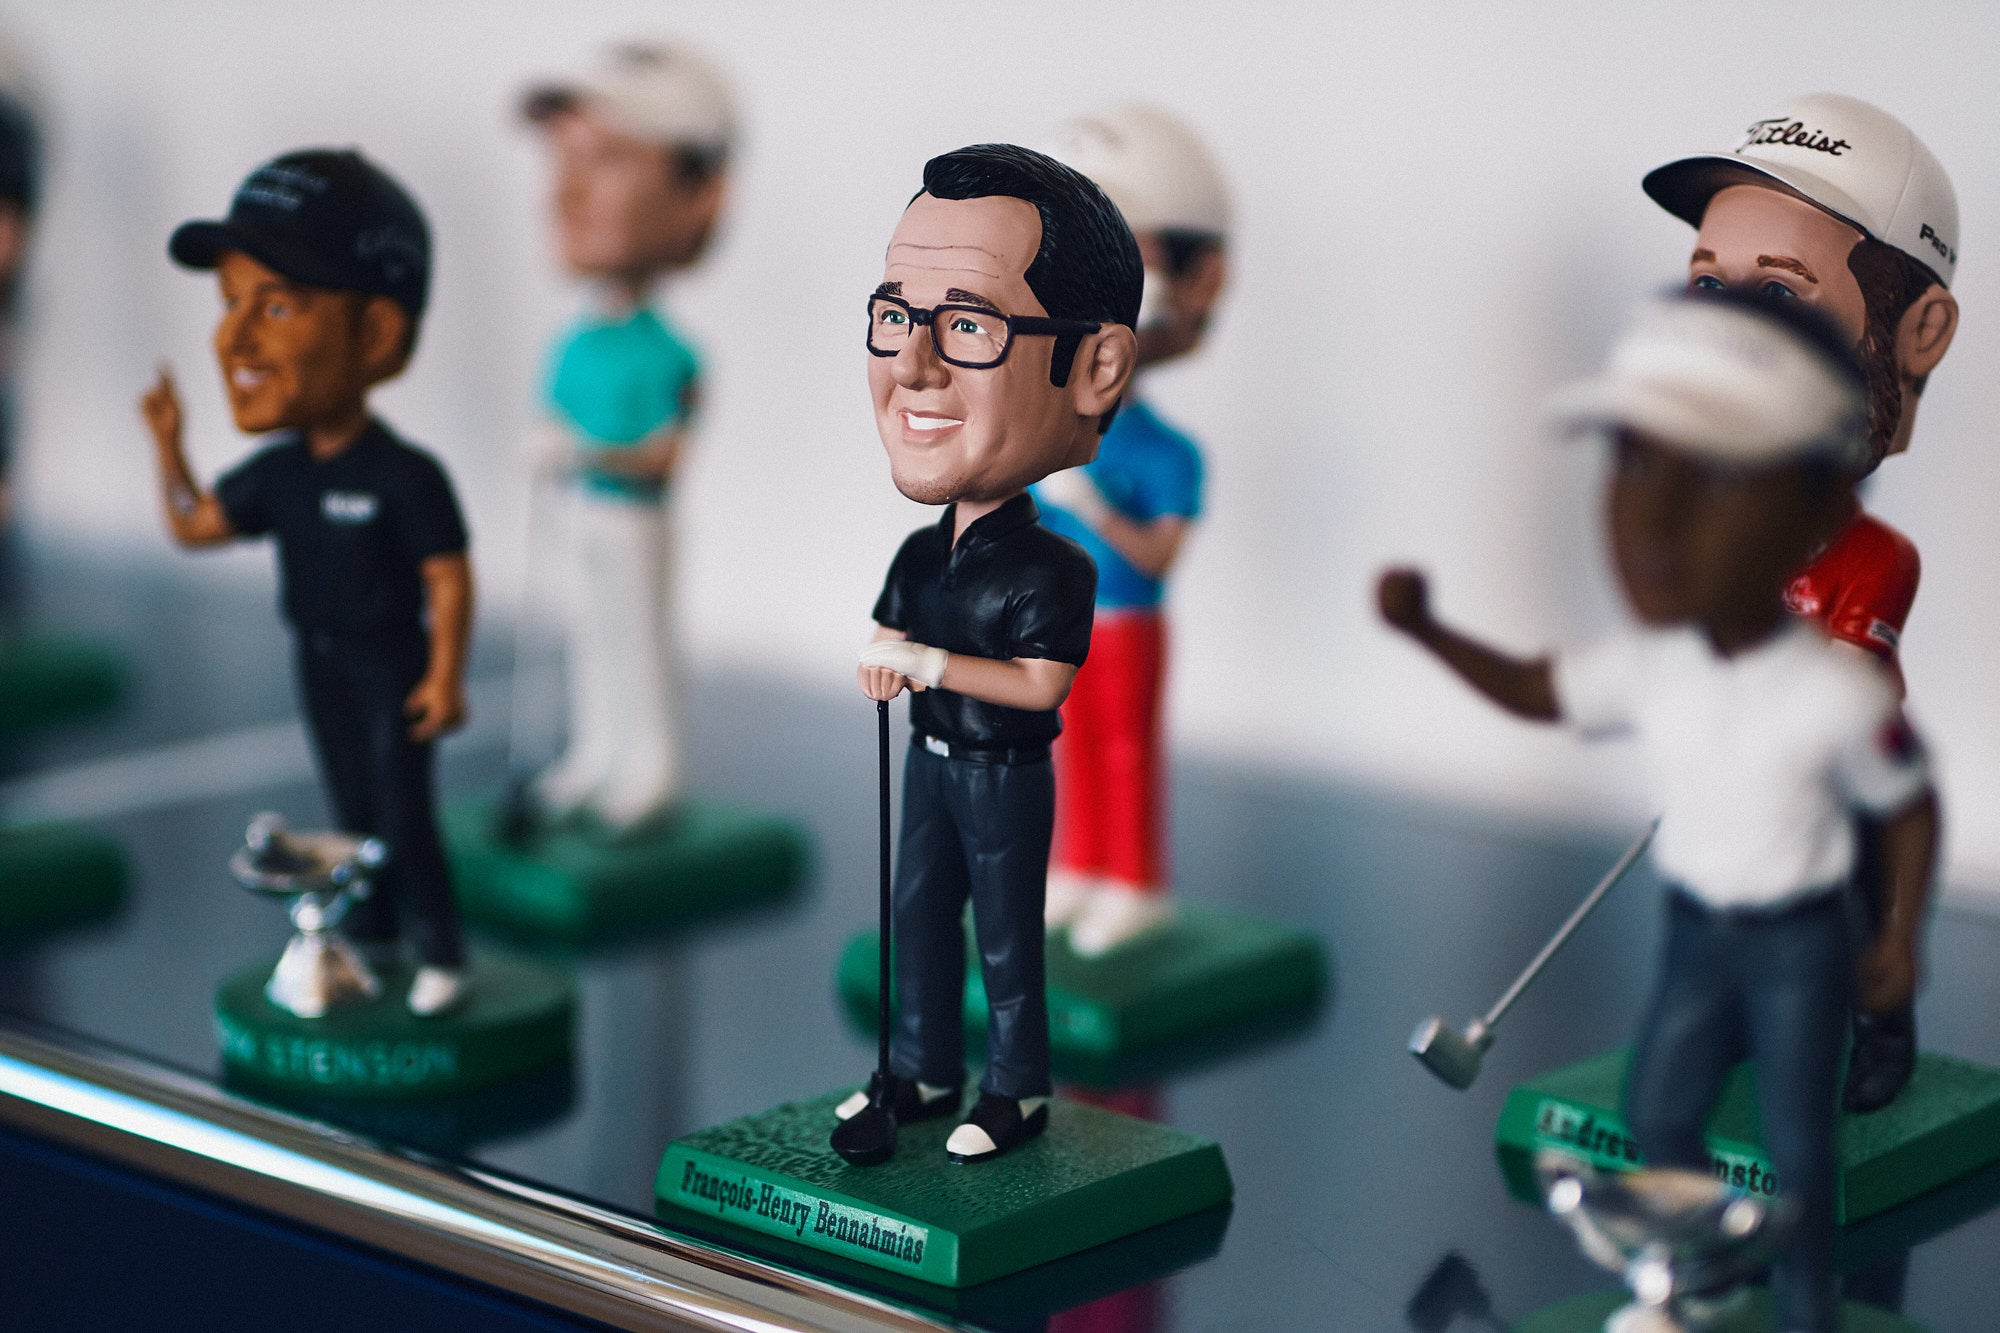 François-Henry Bennahmias CEO of Audemars Piguet AP golfing bobble head with gold professional bobble heads in his office in Le Brassus for A Collected Man London